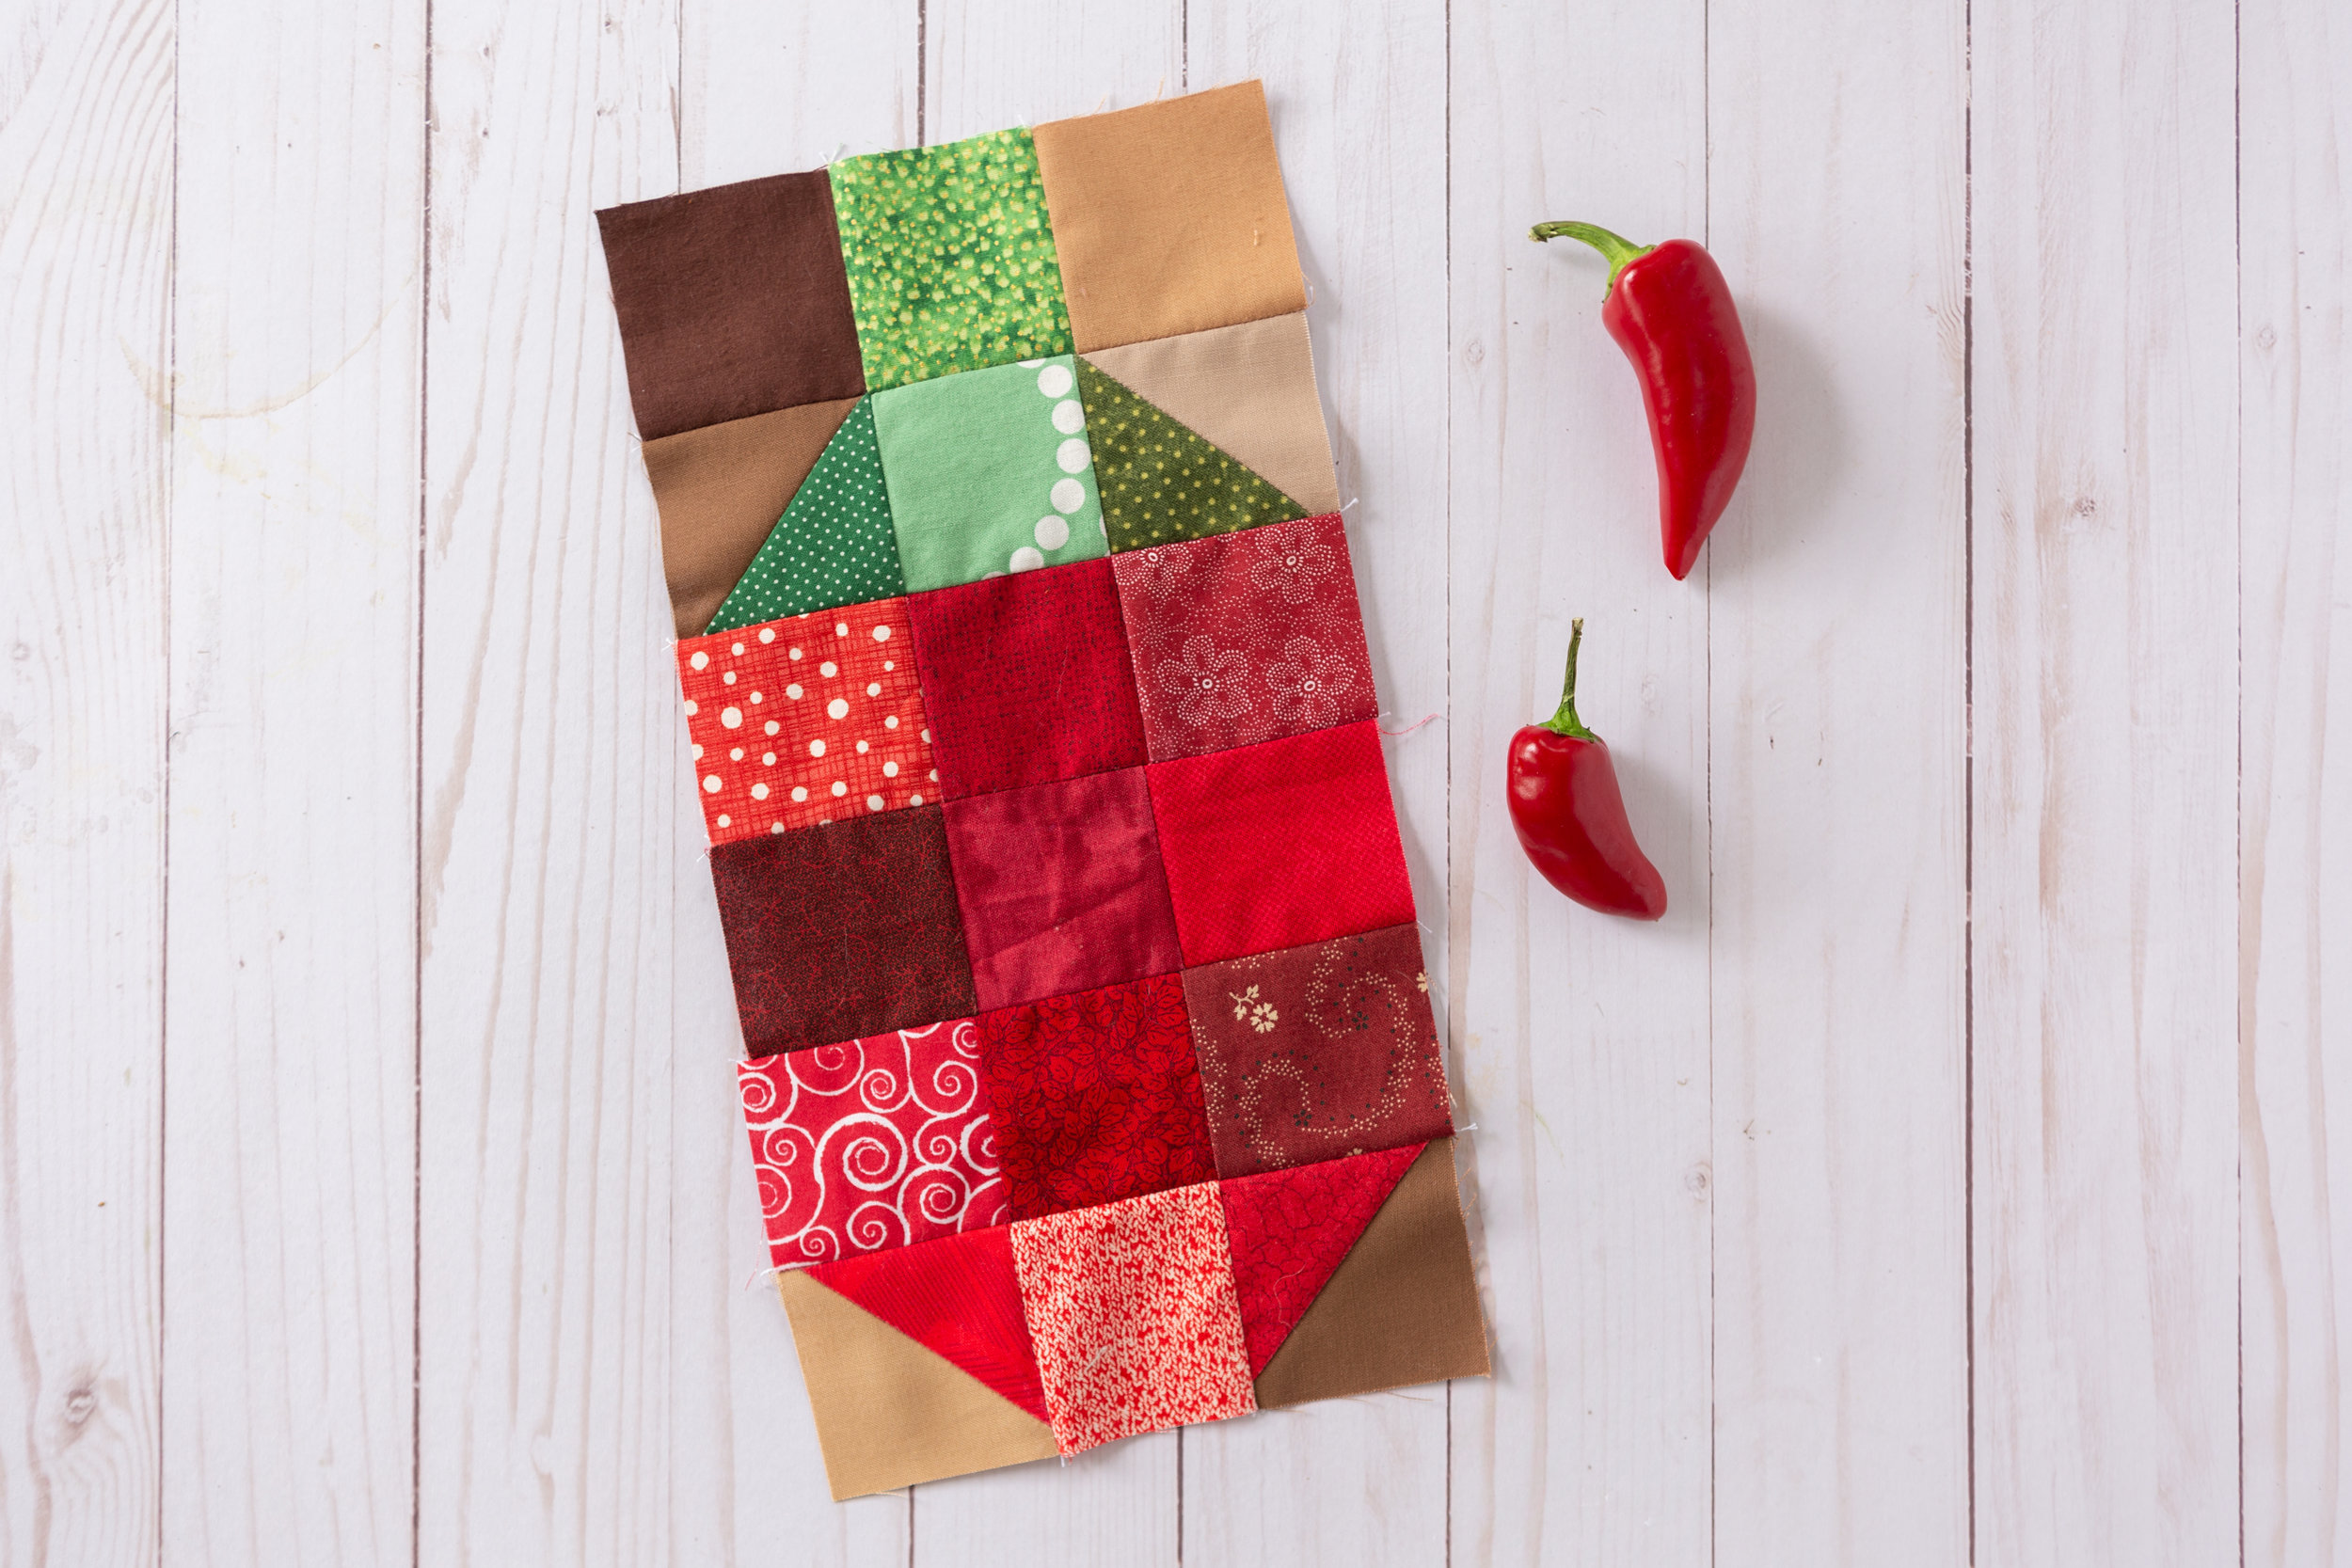 Jalapeño - a Veggie Patch Quilt Block by Katie Mae Quilts